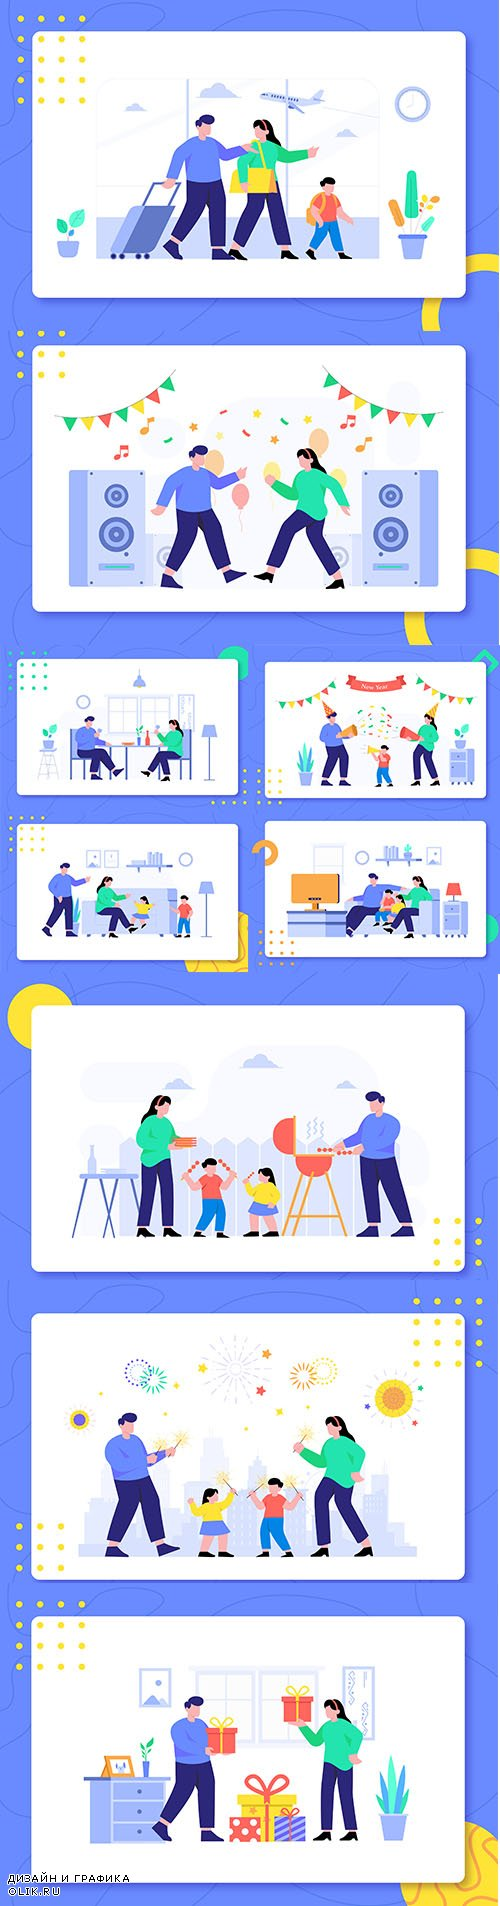 Family Activity Together Design Illustration Set